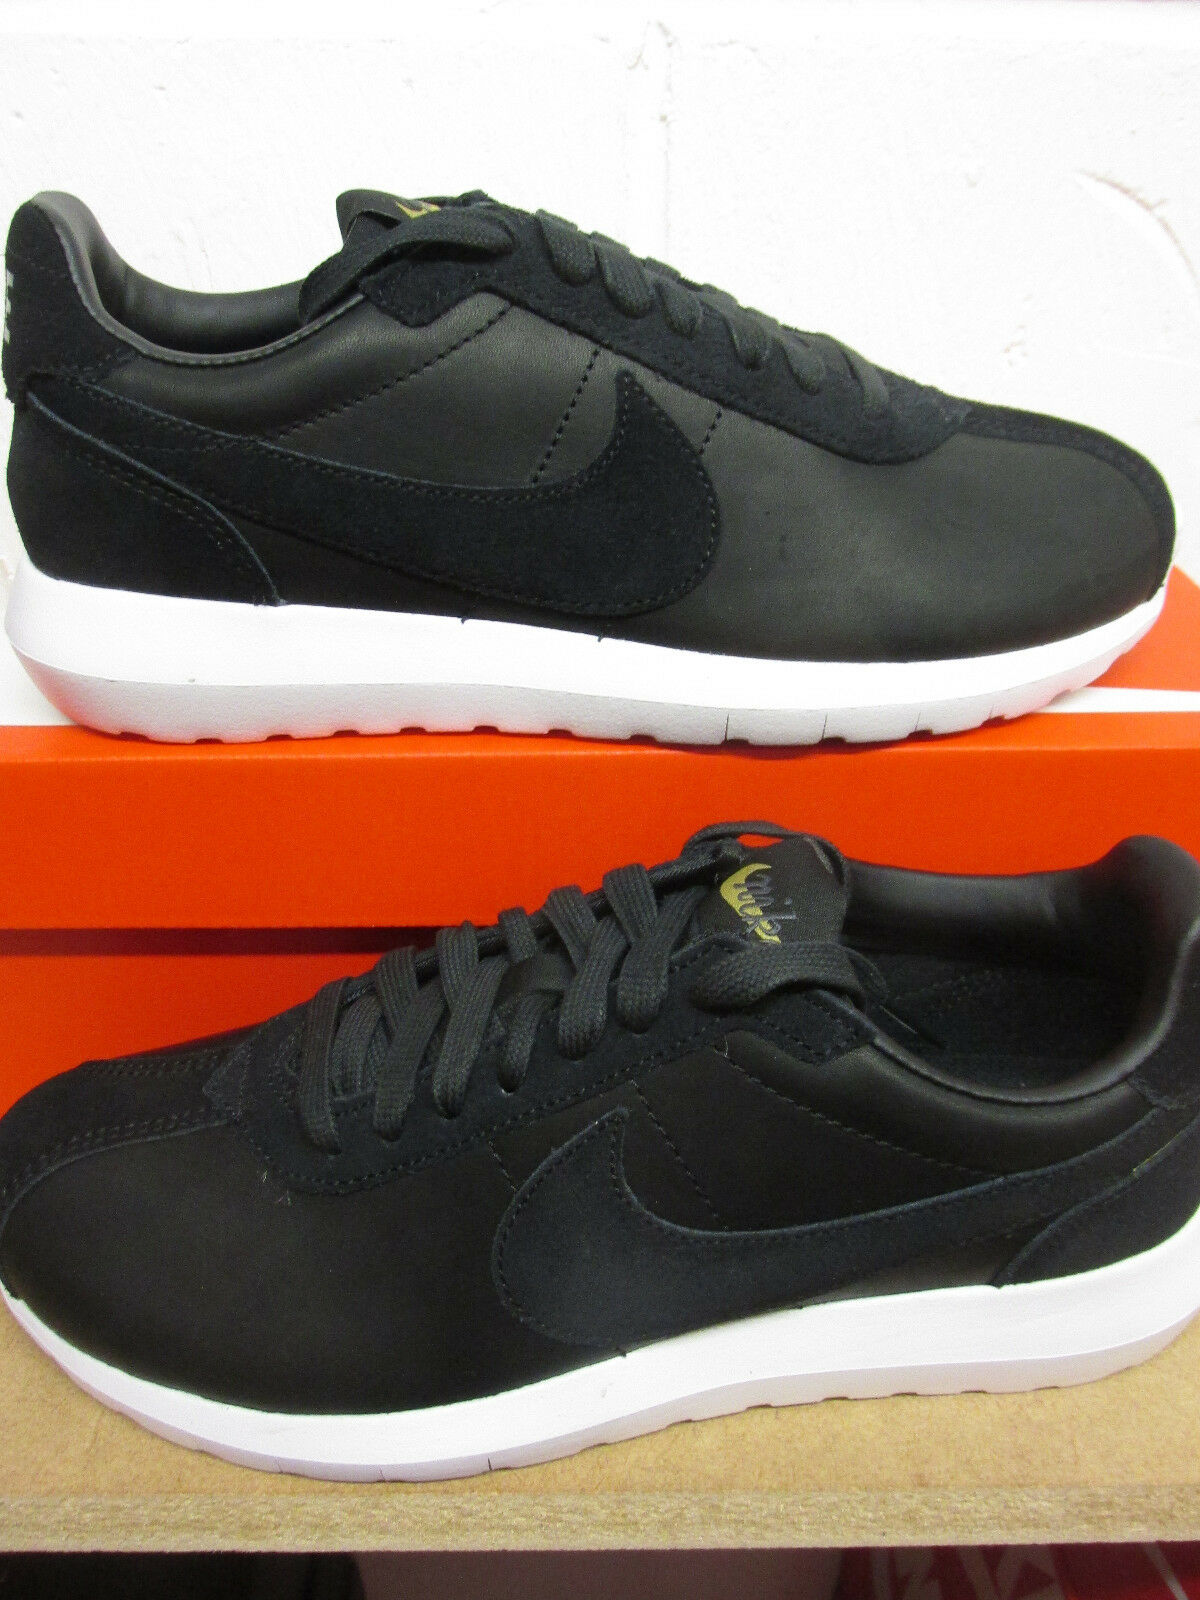 NIke Roshe LD-1000 Trainers Premium QS Mens Running Trainers LD-1000 842564 001 Sneakers Shoes 057eb8